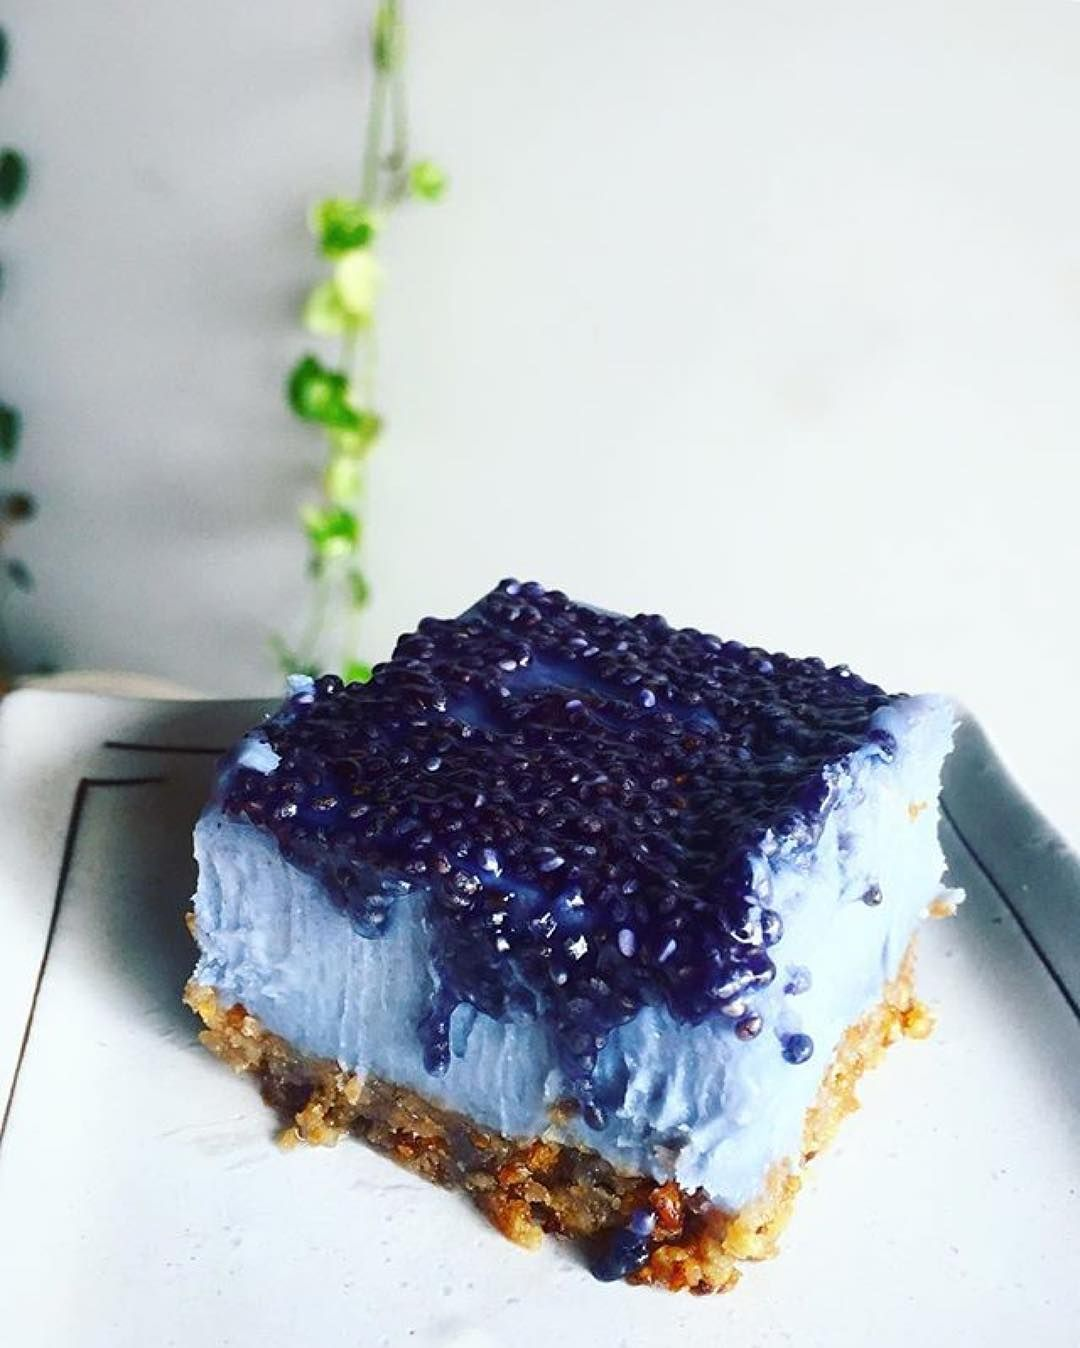 Vanilla mulberry and Bluechai butterfly pea flower cake